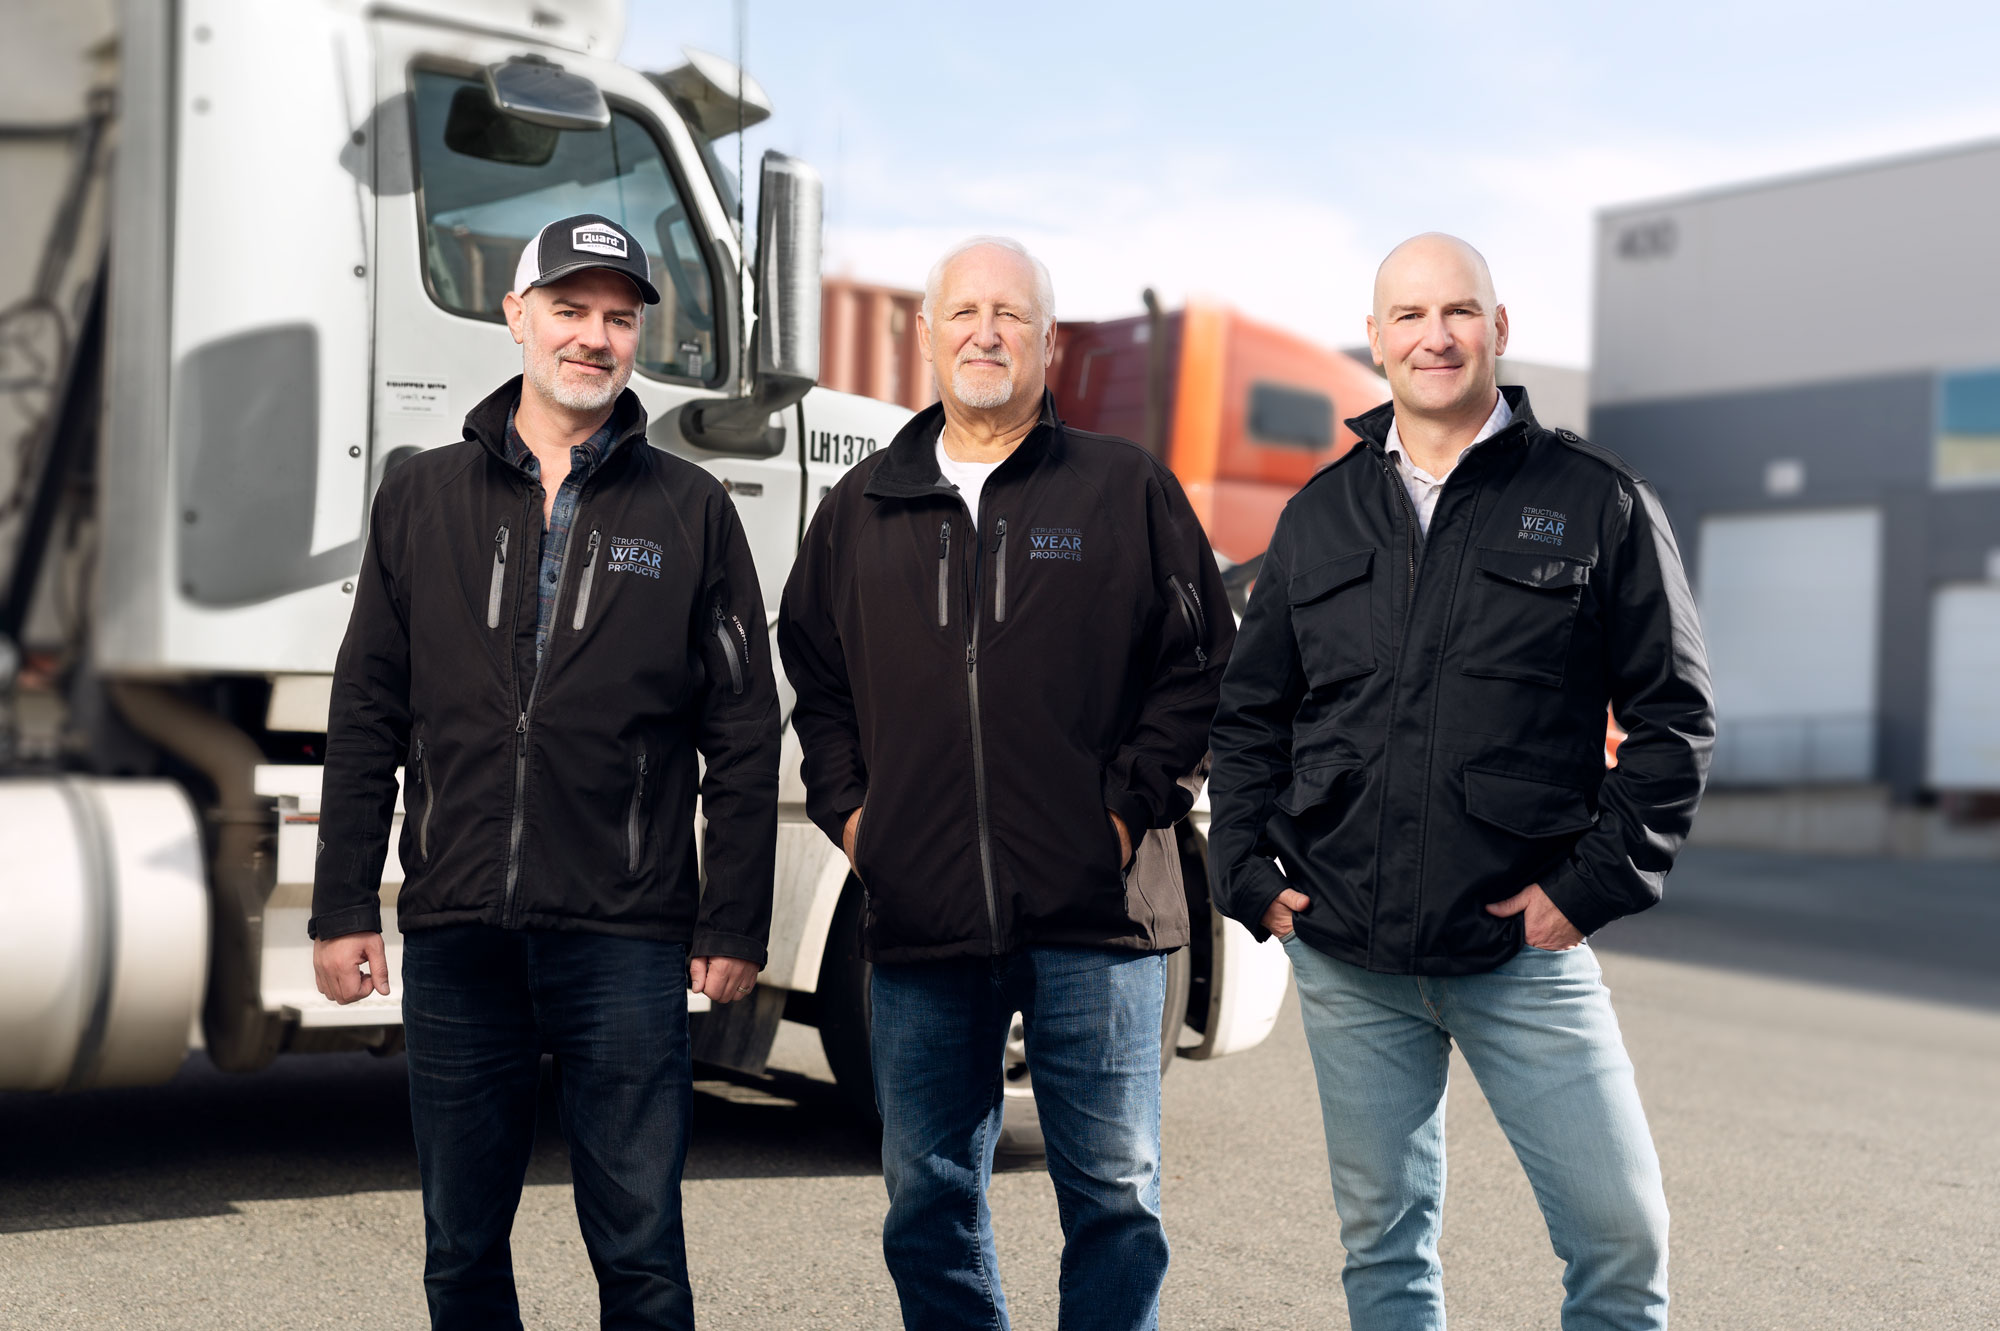 Mike Kirby, Brian Kirby and Chris Kirby standing together at Structural Wear Products